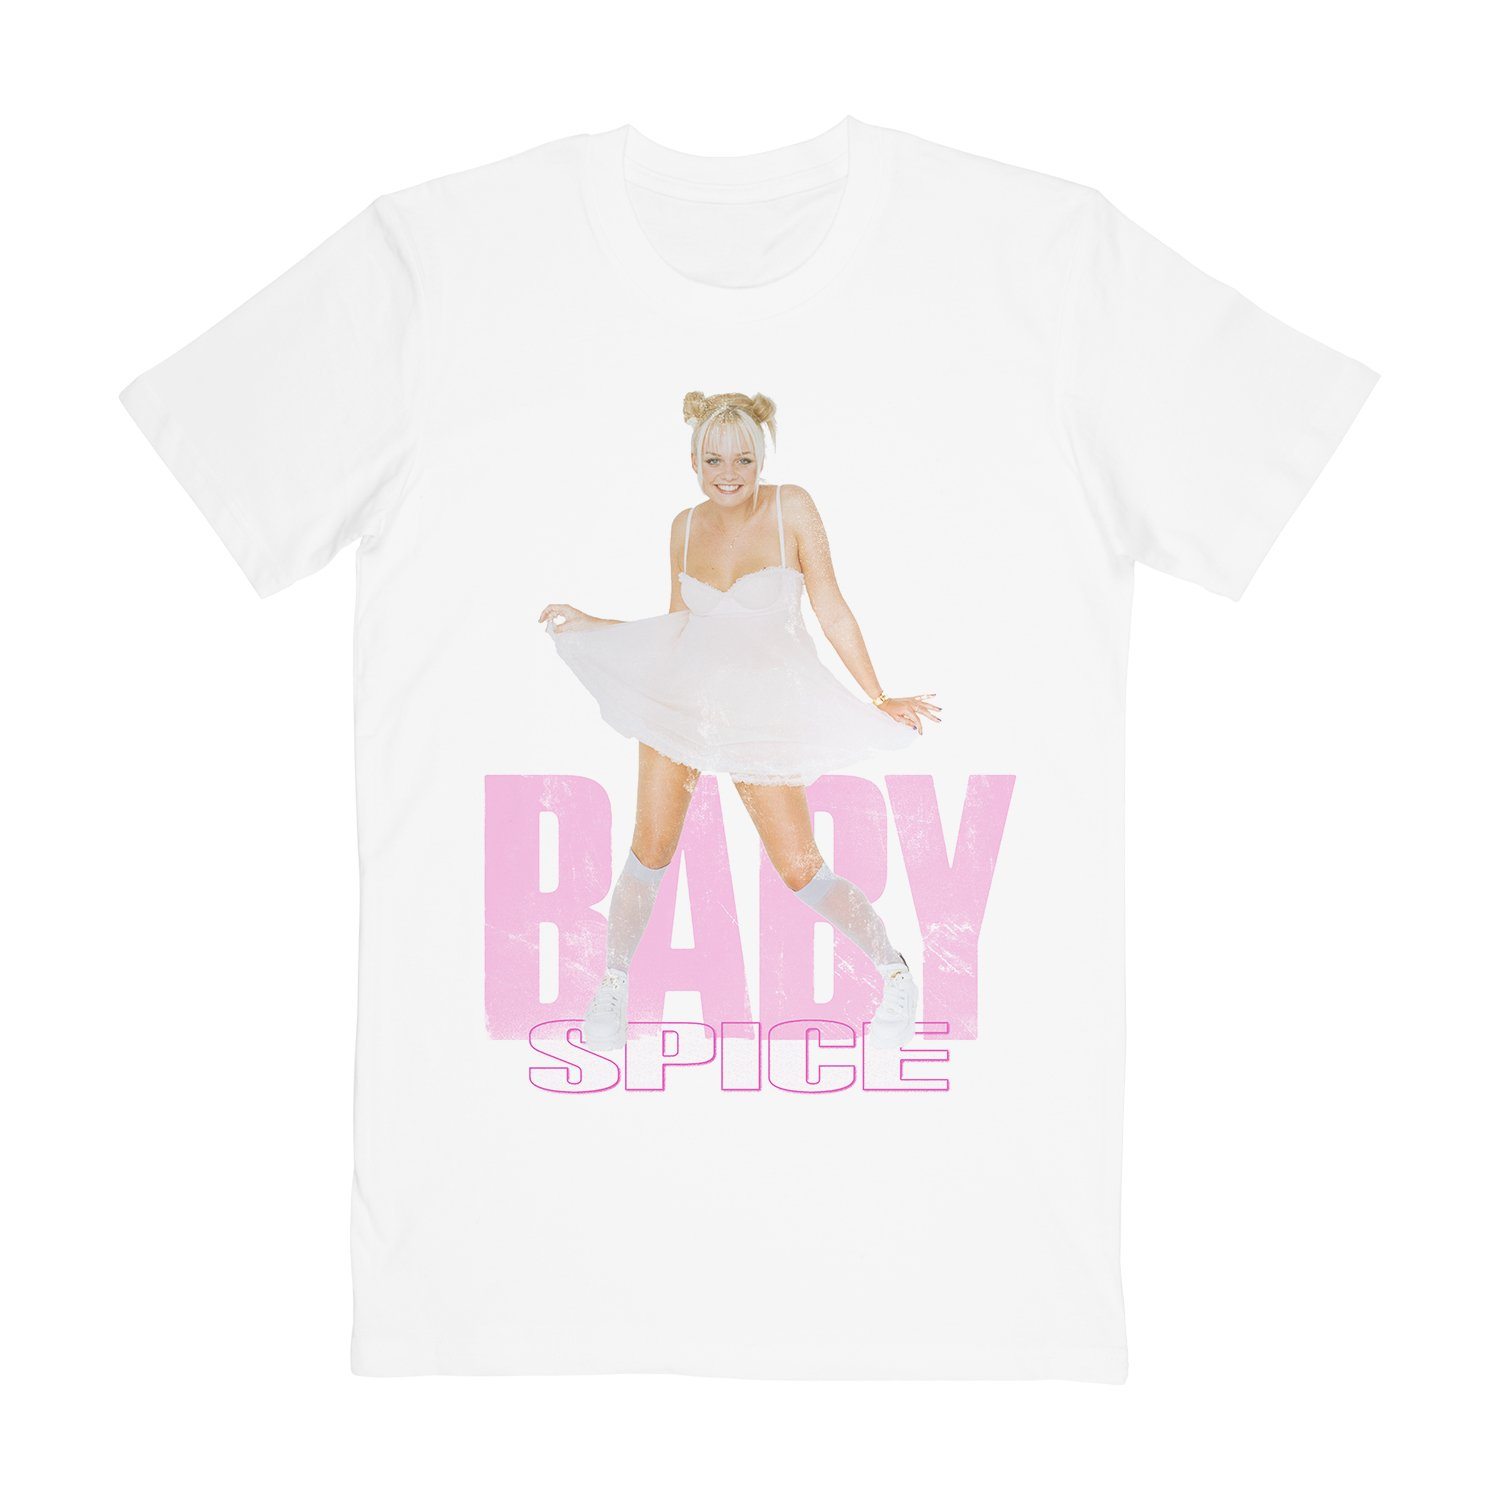 Spice Girls - Baby Spice Tee